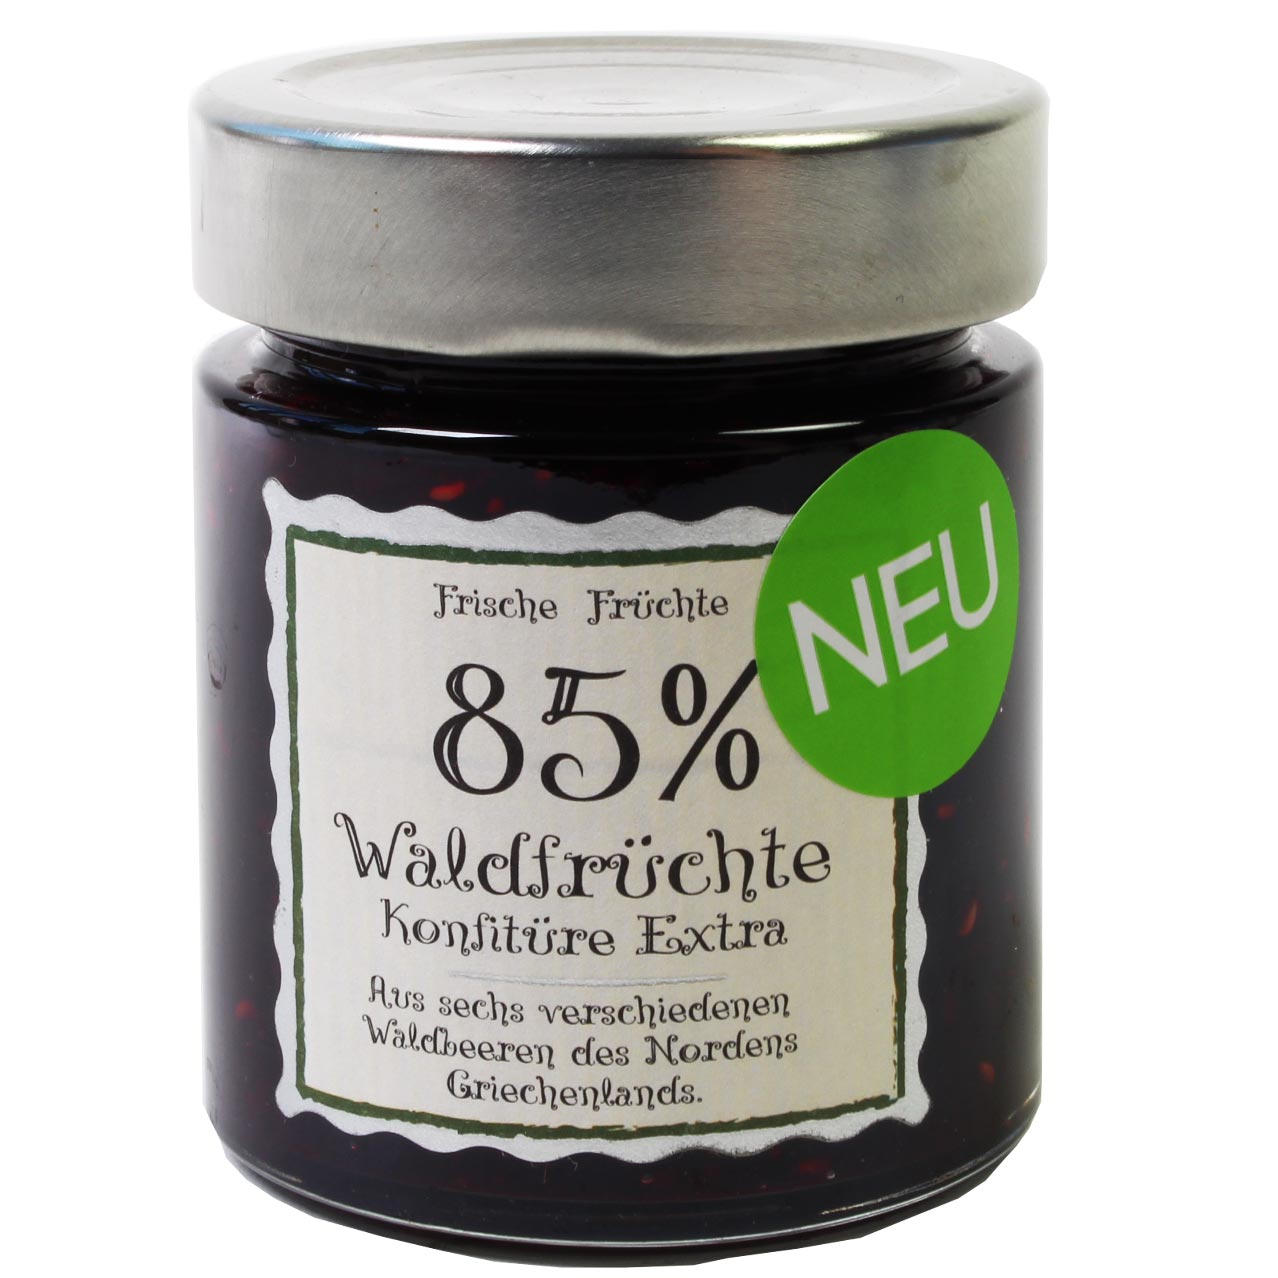 Forest fruit jam Extra 85% fruit content -  - Chocolats-De-Luxe